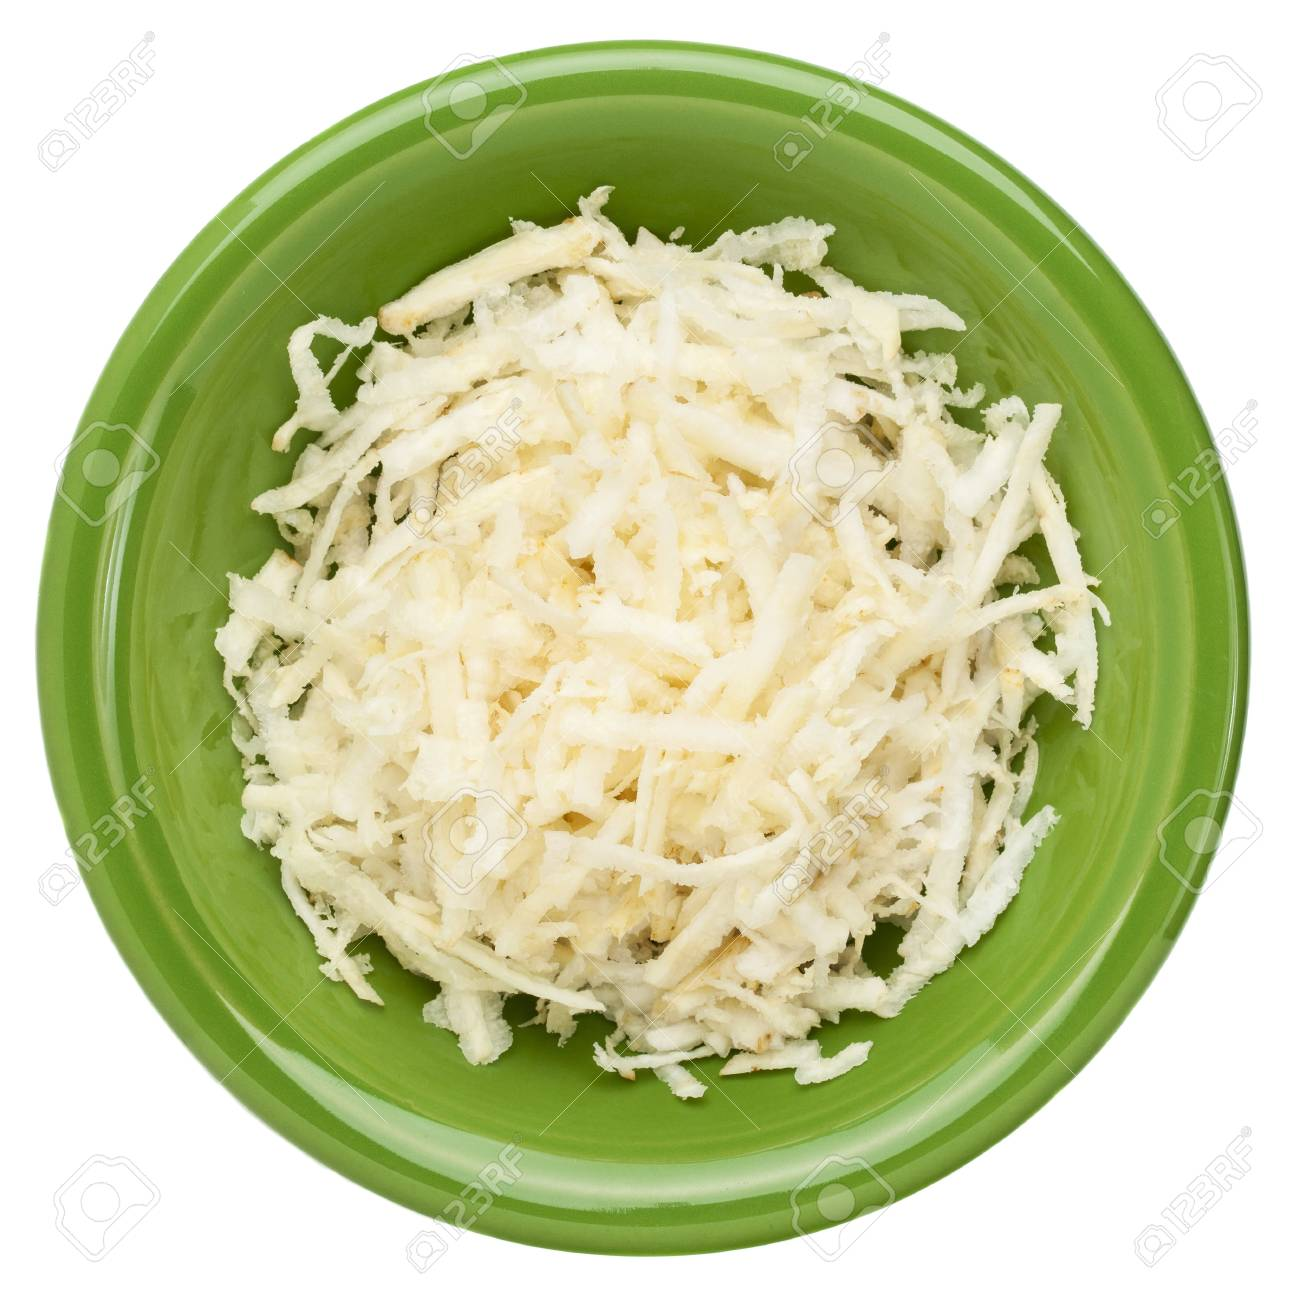 grated celery root  celeriac  on a small green ceramic bowl, isolated on white Stock Photo - 15776575